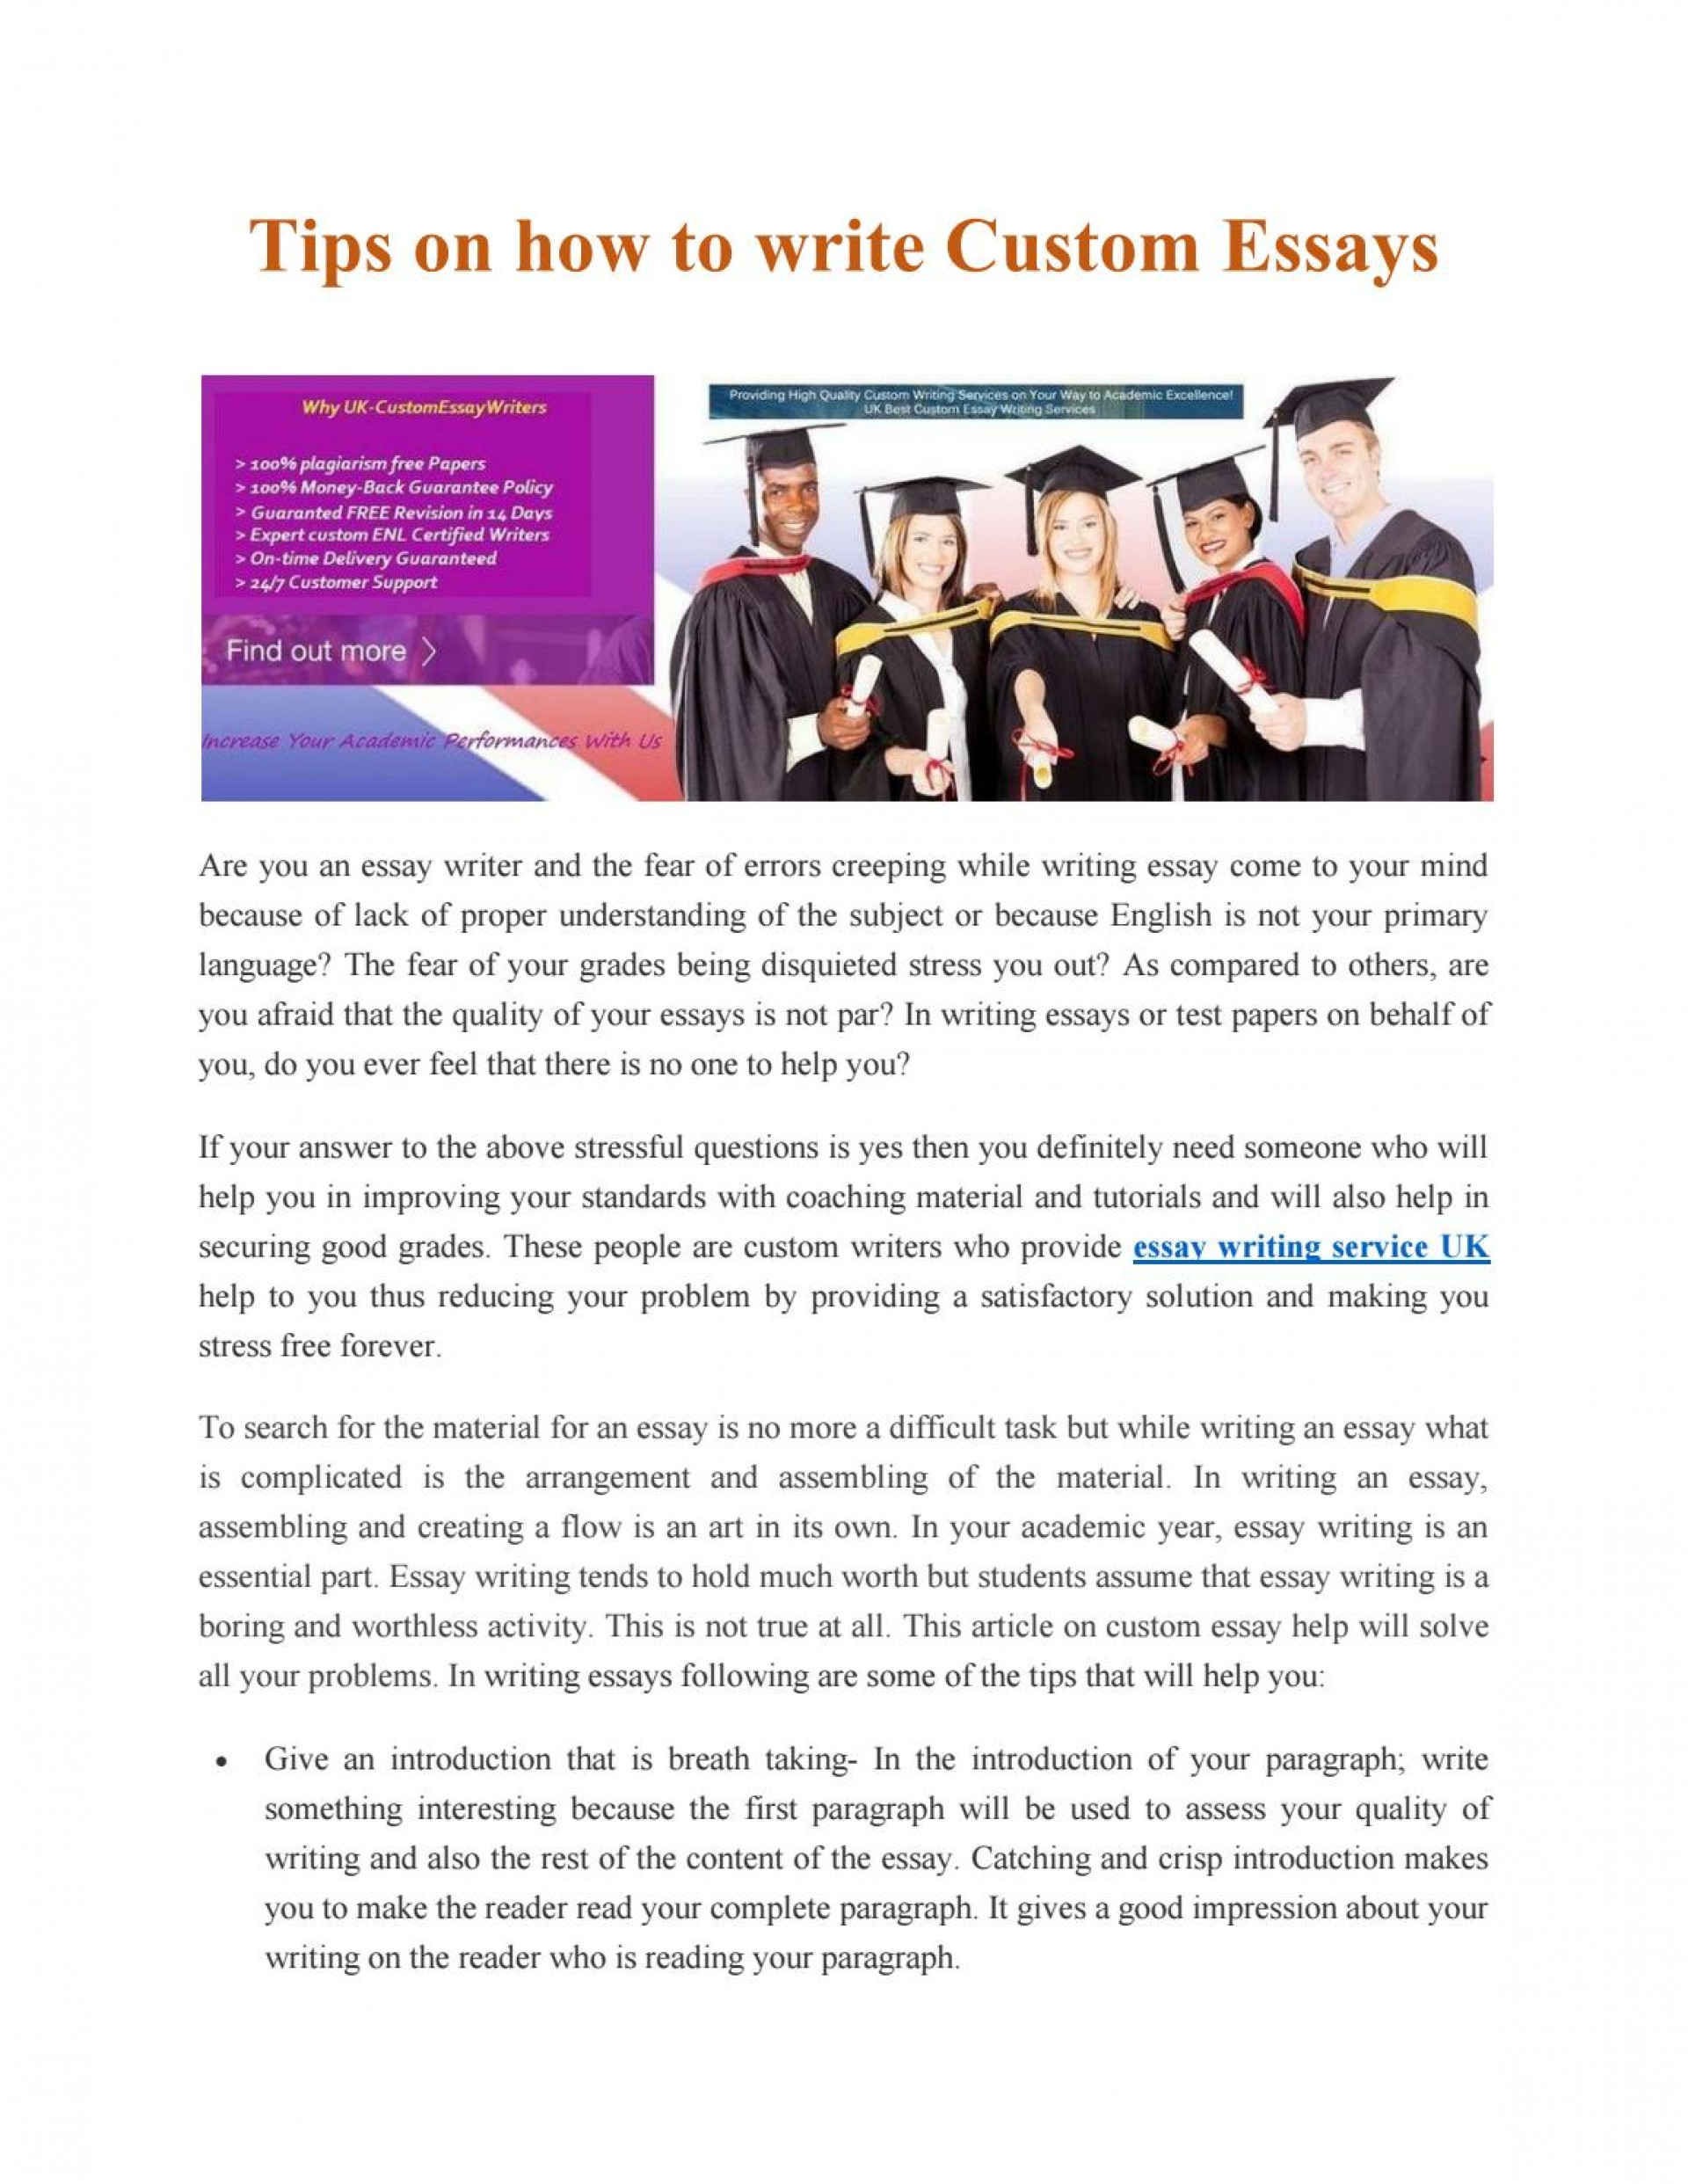 010 Essay Example Page 1 Custom Awesome Writing Services Canada Reviews Service 1920